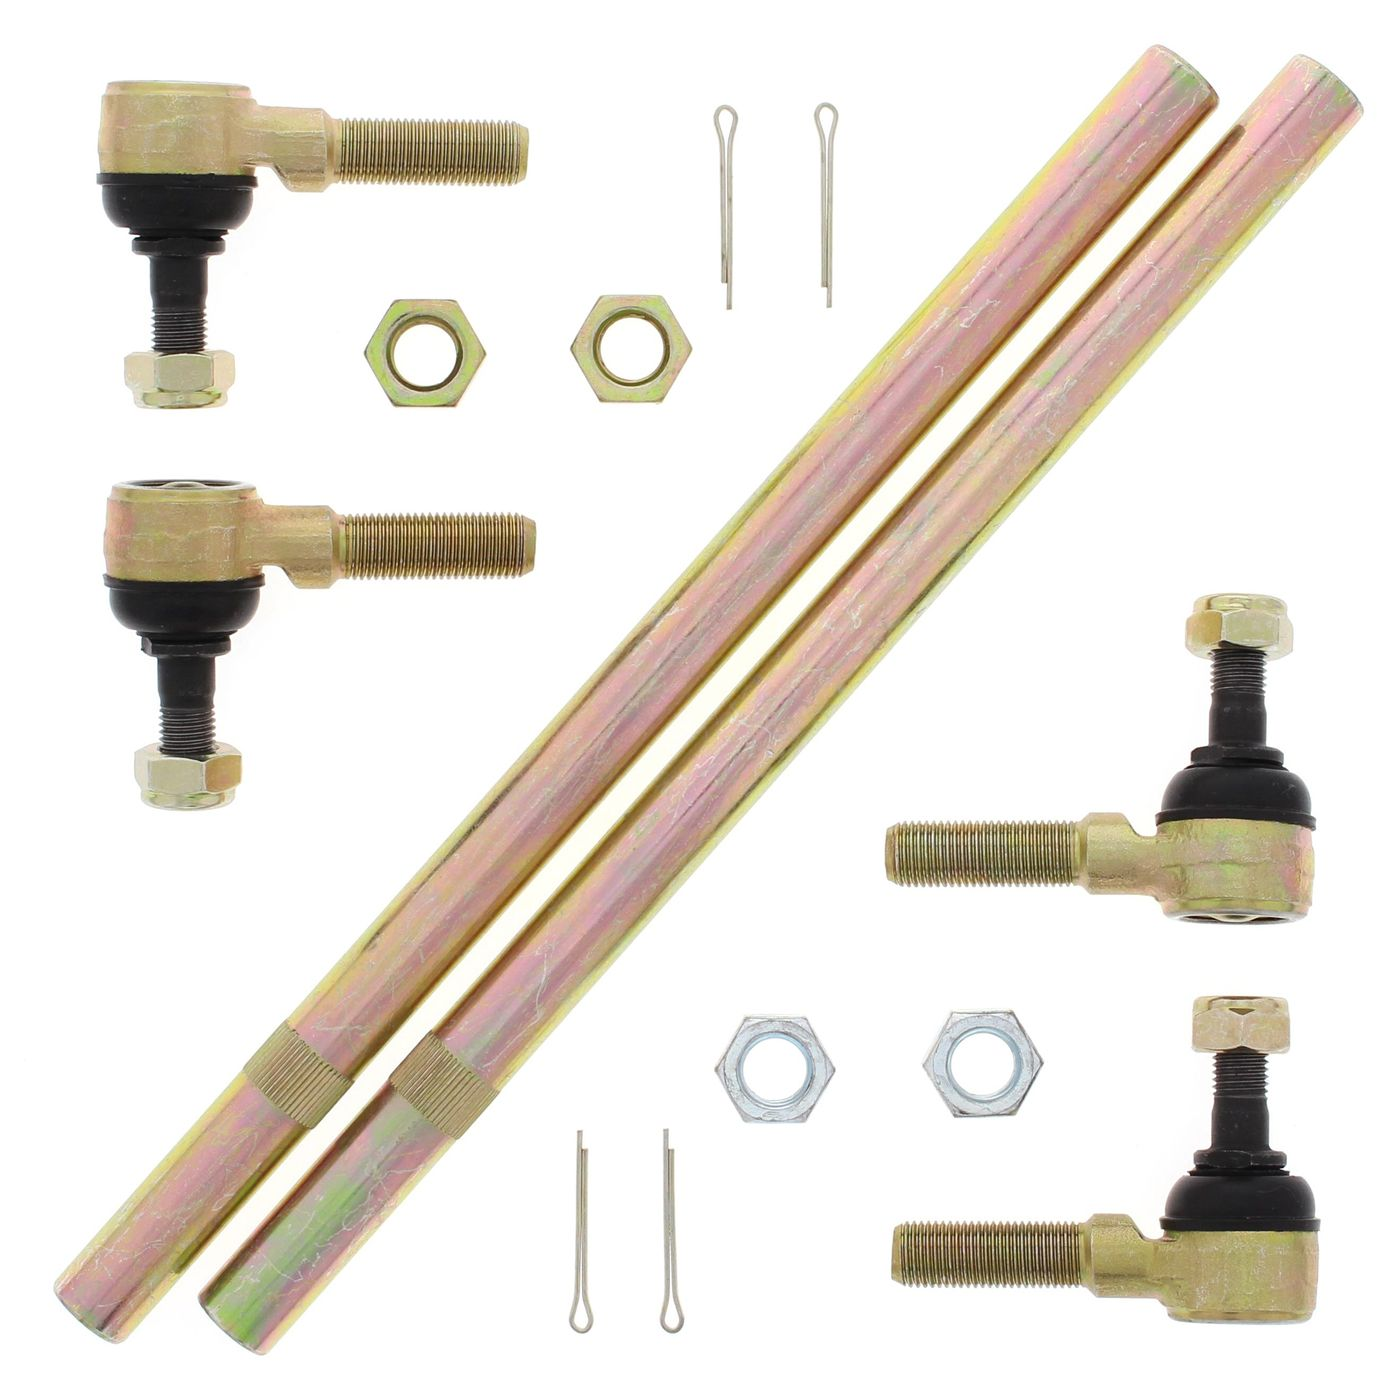 Wrp Tie Rod Kits - WRP521021 image